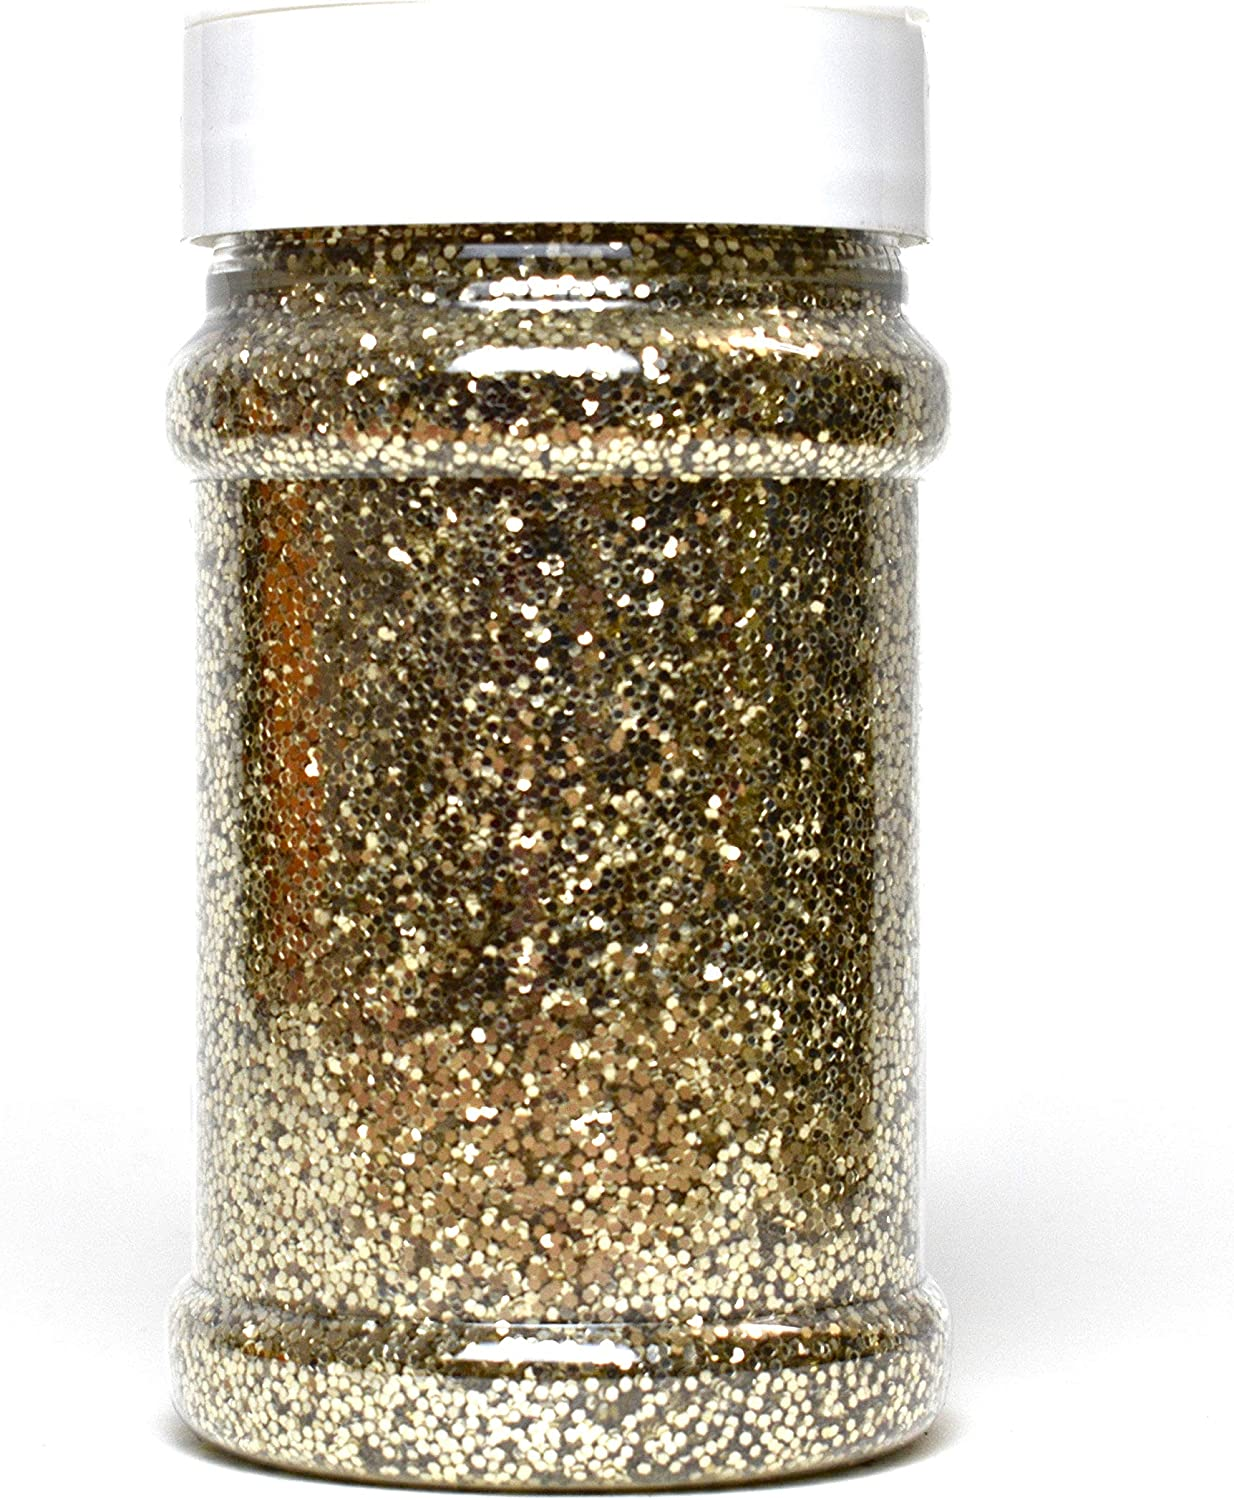 25% OFF Glitter PVC 250G Manufacturer regenerated product Champagne